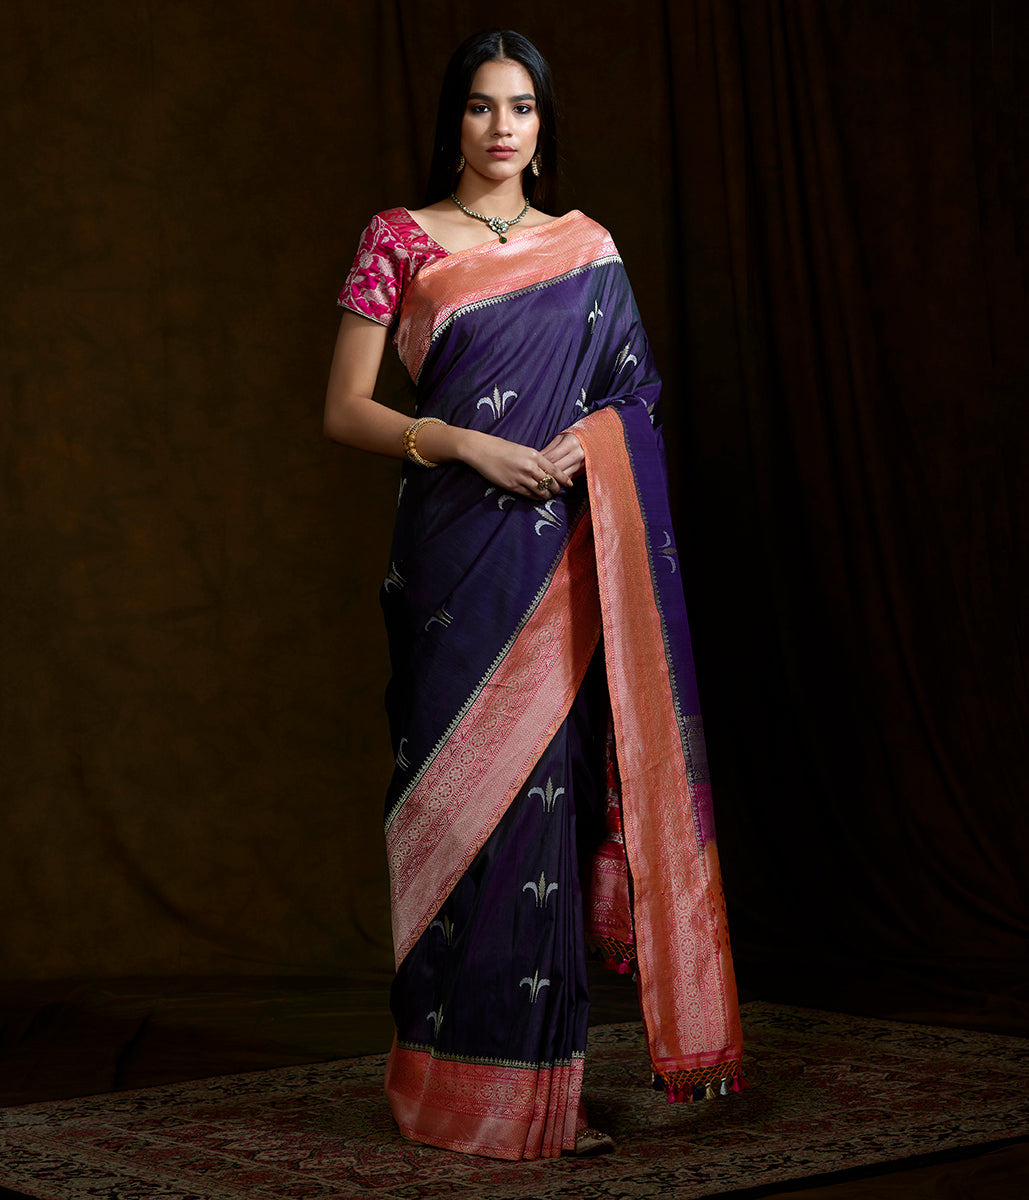 Handwoven banarasi Tusser silk saree in purple with a peach border and floral motifs